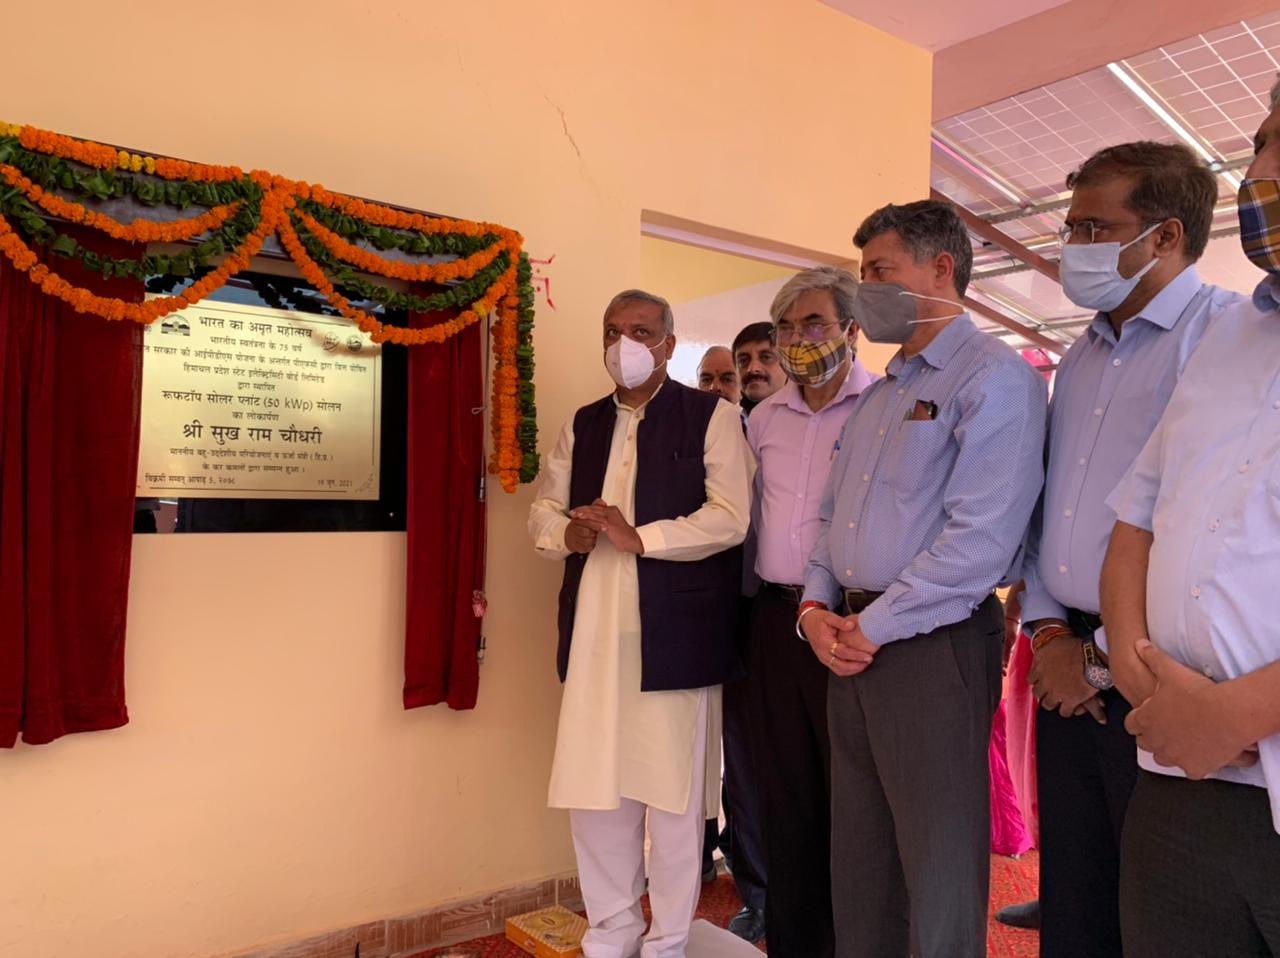 50 KWp Solar Roof Top Under the IPDS Scheme of Government of India Inaugurated in Solan as Part of 'Azadi Ka Amrit Mahotsav'